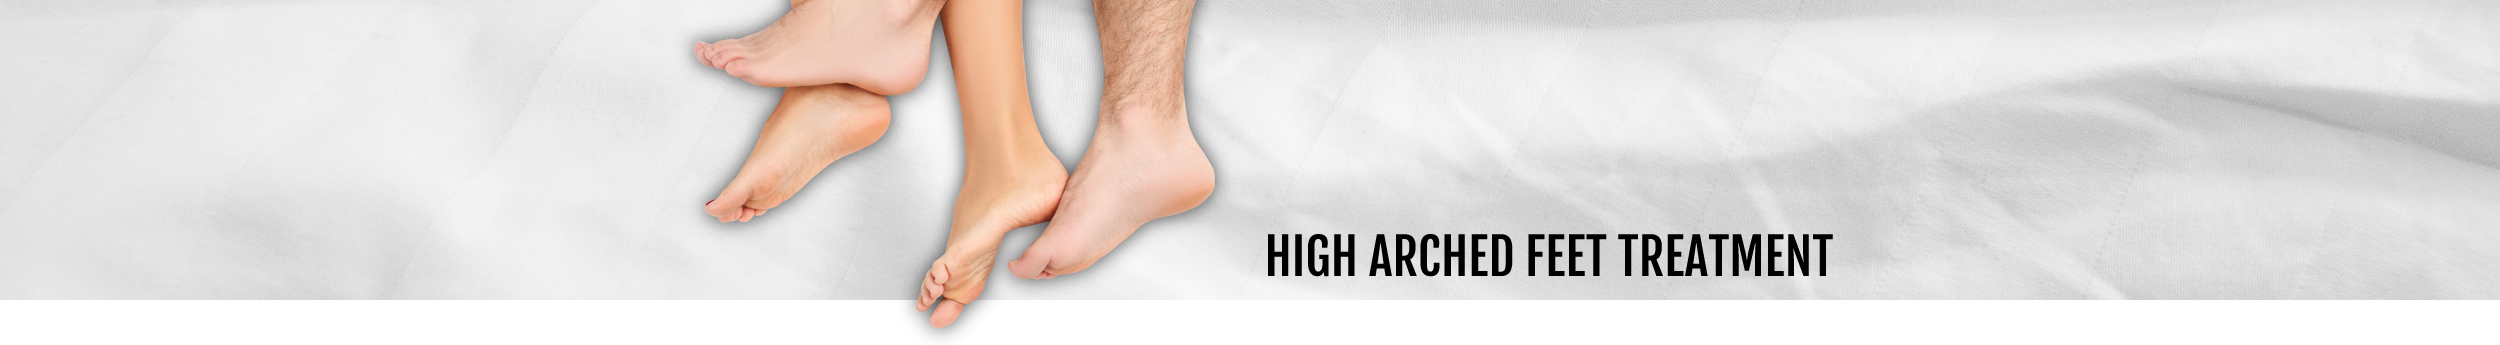 High arched feet treatment header for the Walk IN Foot Clinic in central London